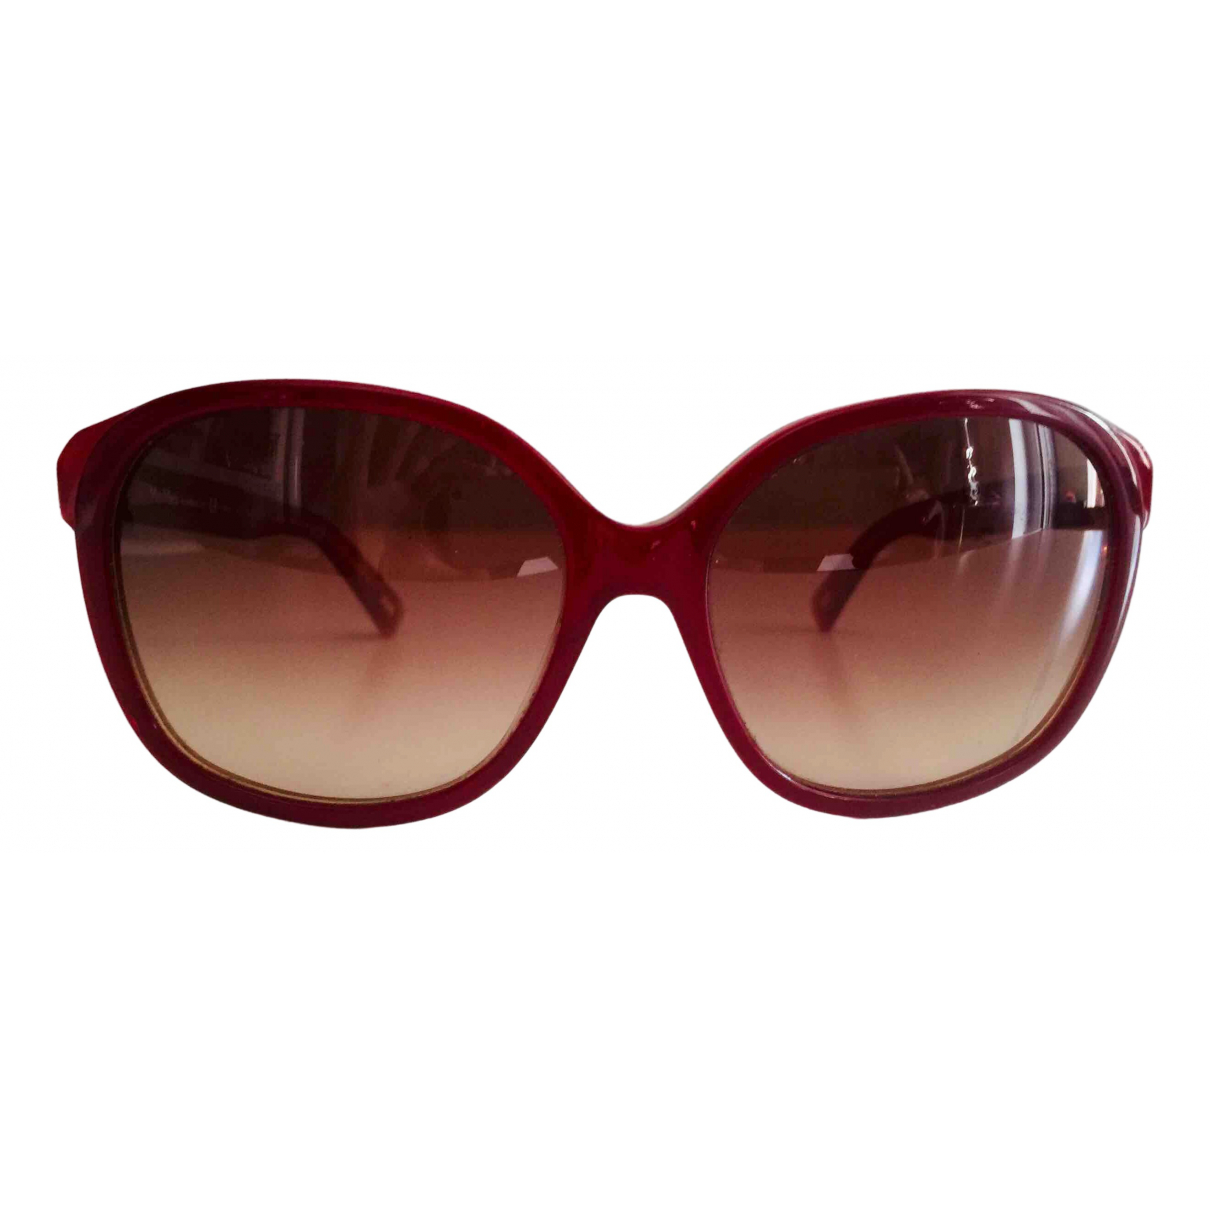 Max Mara \N Red Sunglasses for Women \N